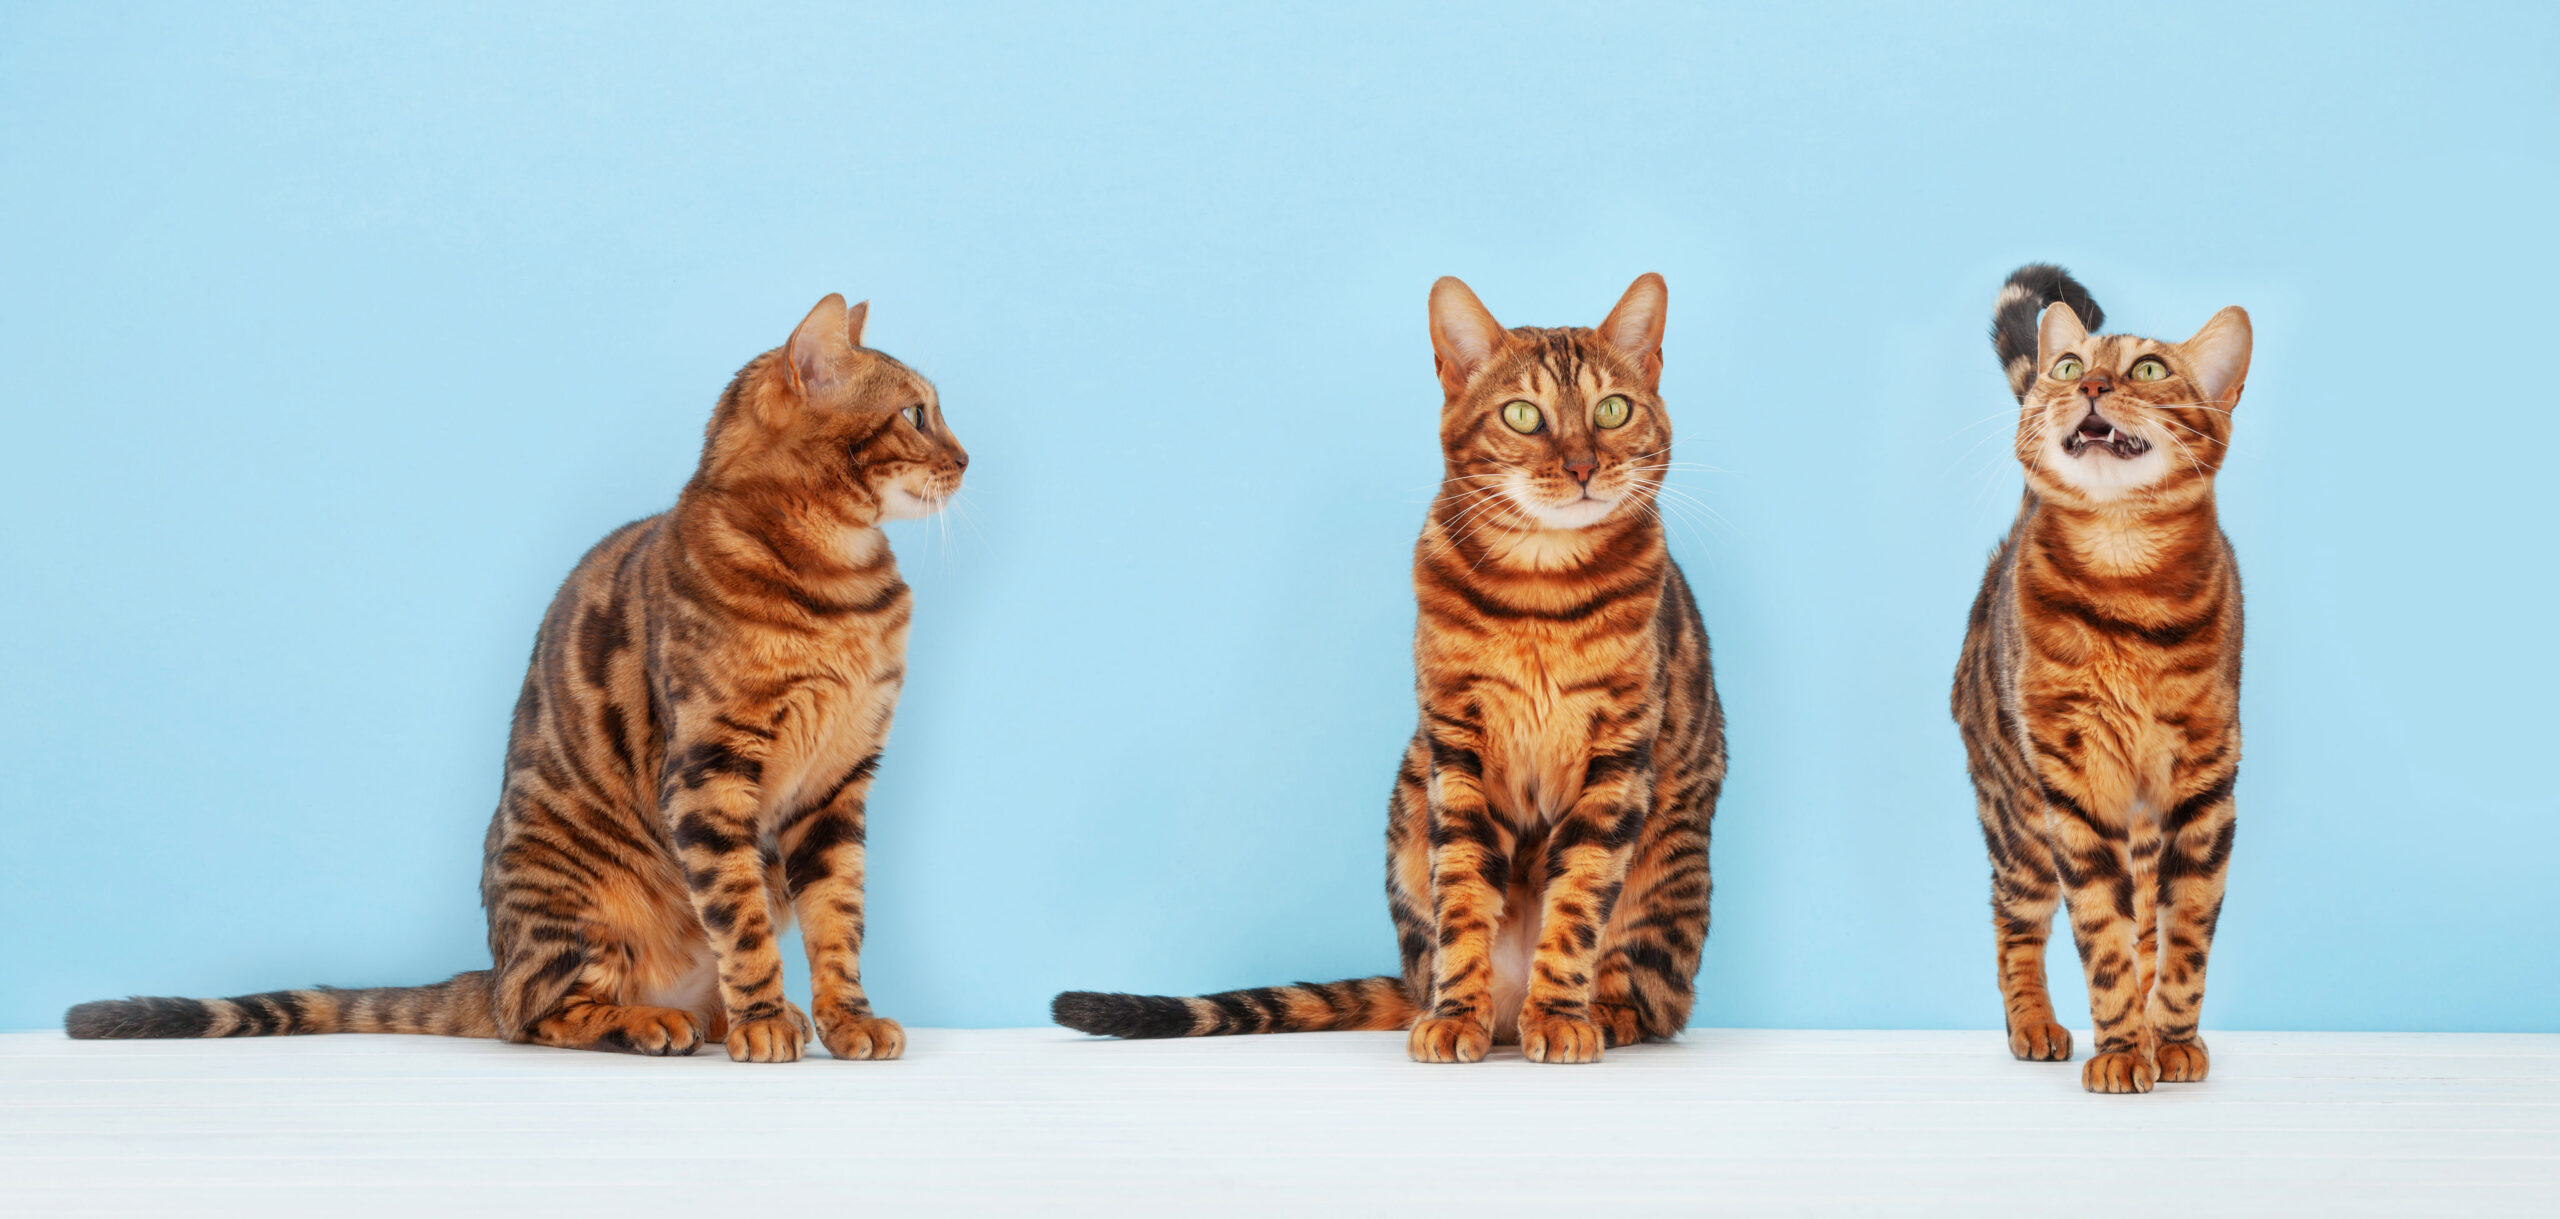 Three Bengal cats photographed on different angles on a light blue background